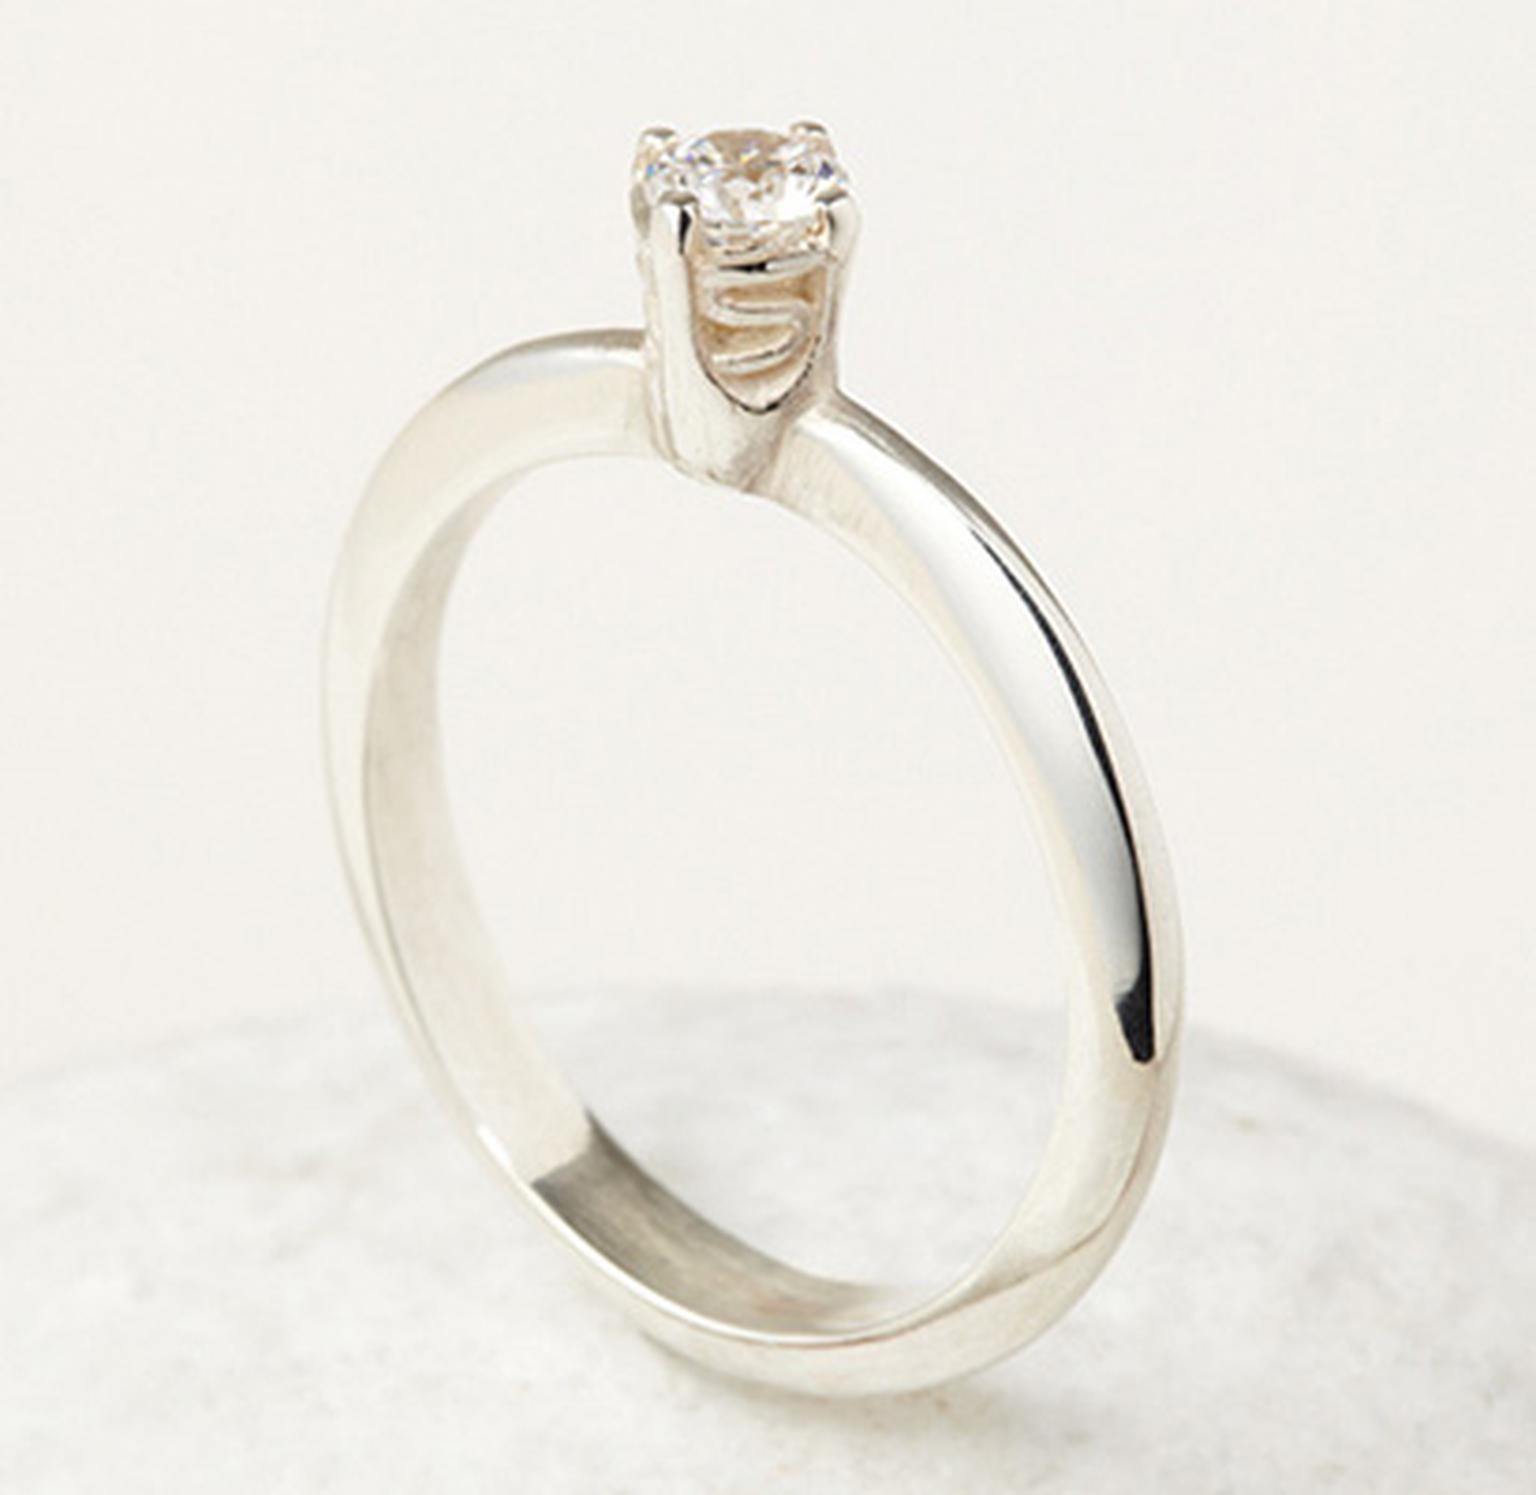 April Doubleday 4 Claw Ring with Waves (from £1,650) in 18ct Fairtrade white gold